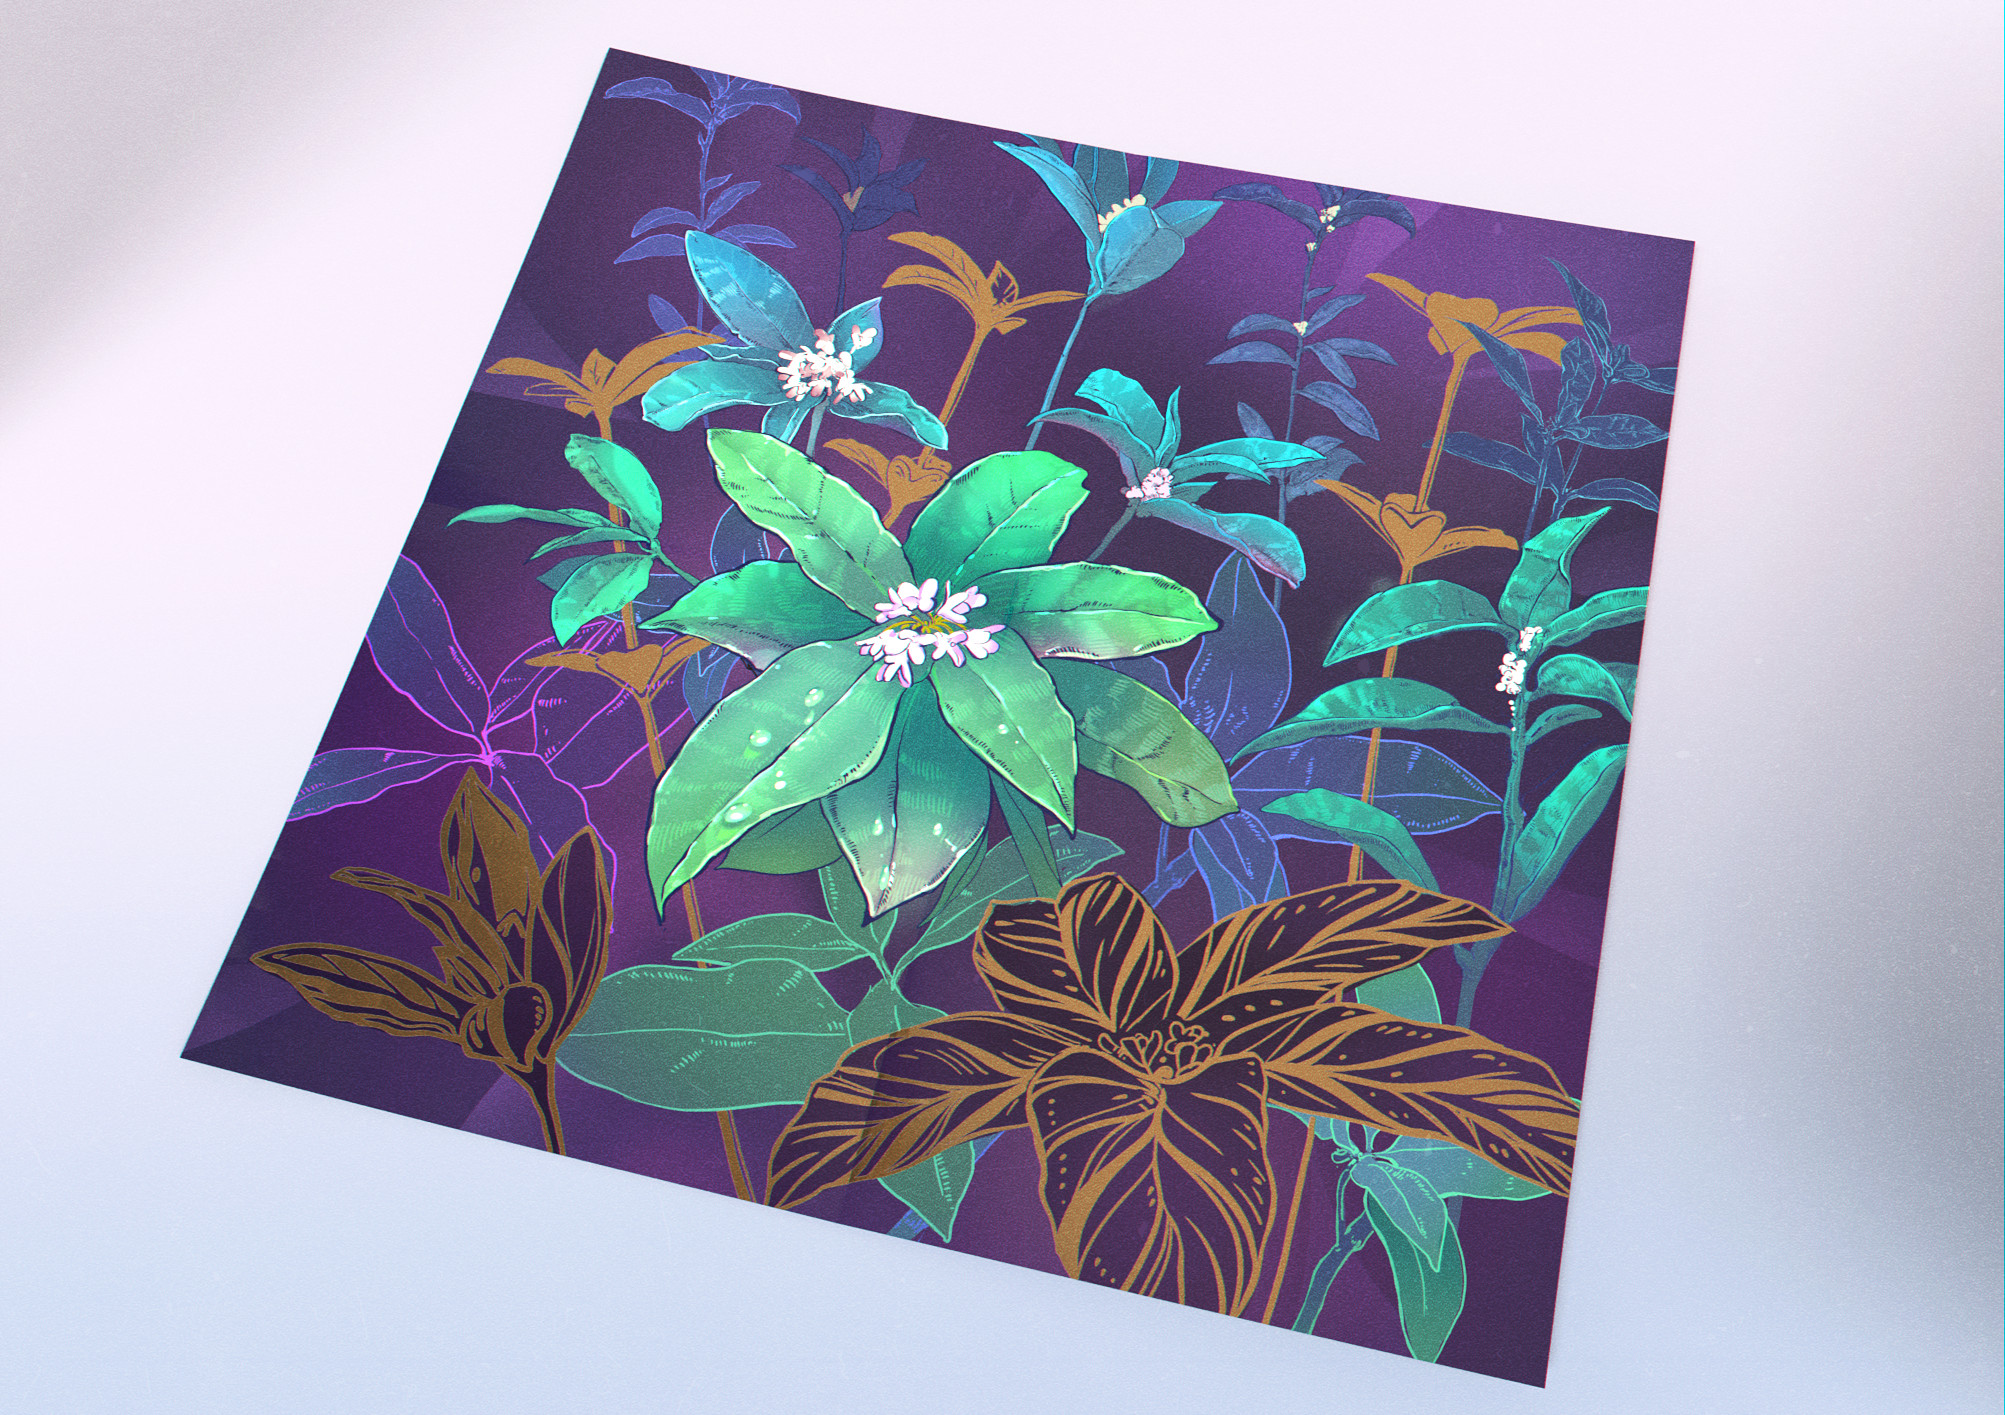 As a poster with plants printed in metallic ink